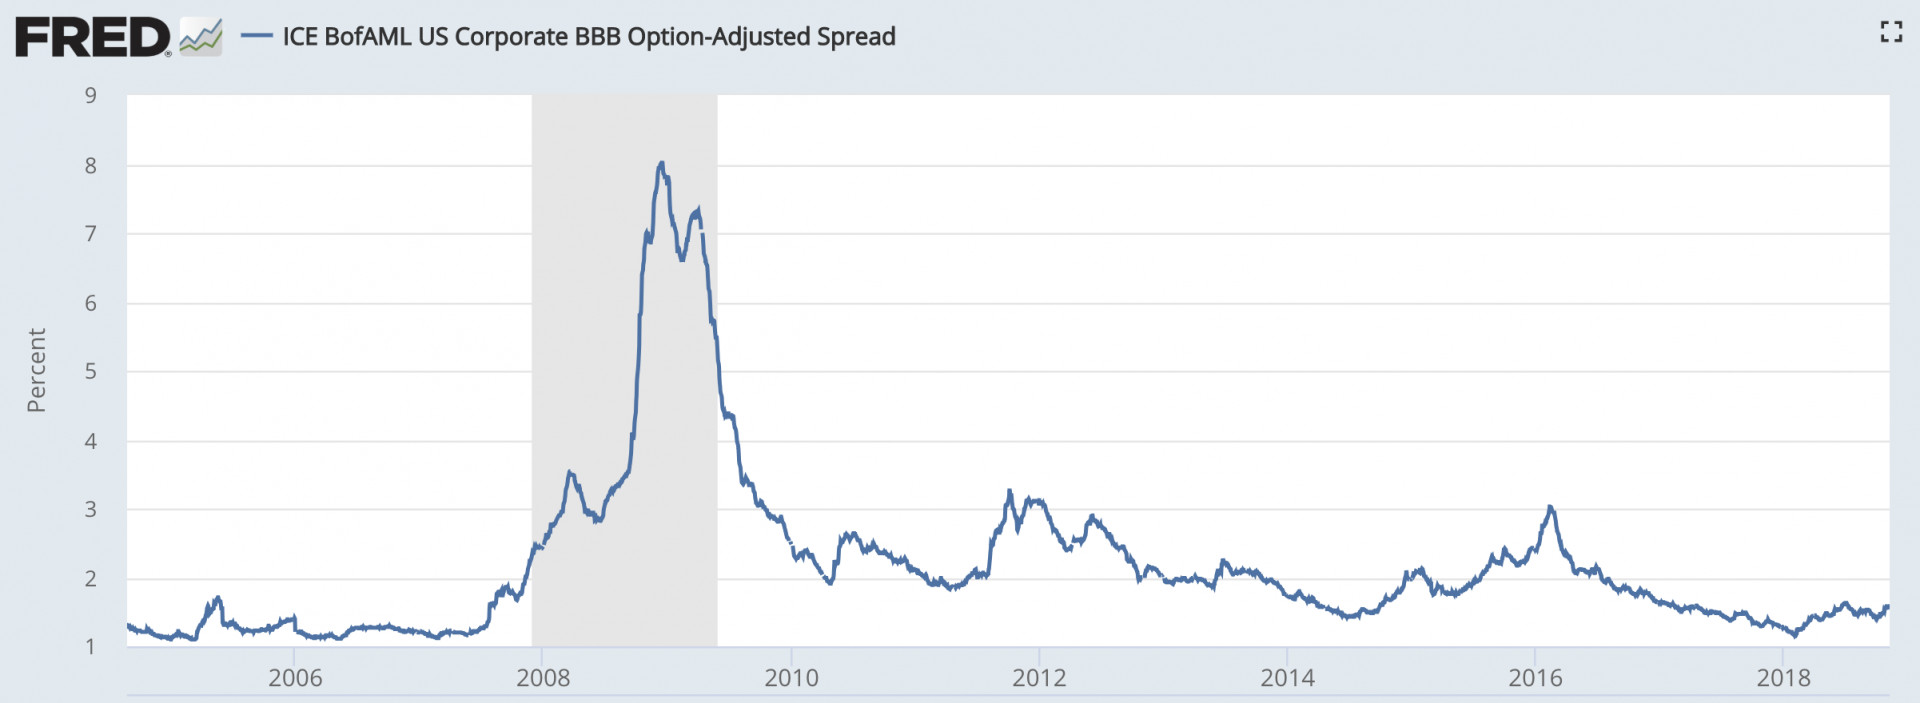 Credit Spread Widening: How Asymmetrically Favorable Is It Currently?